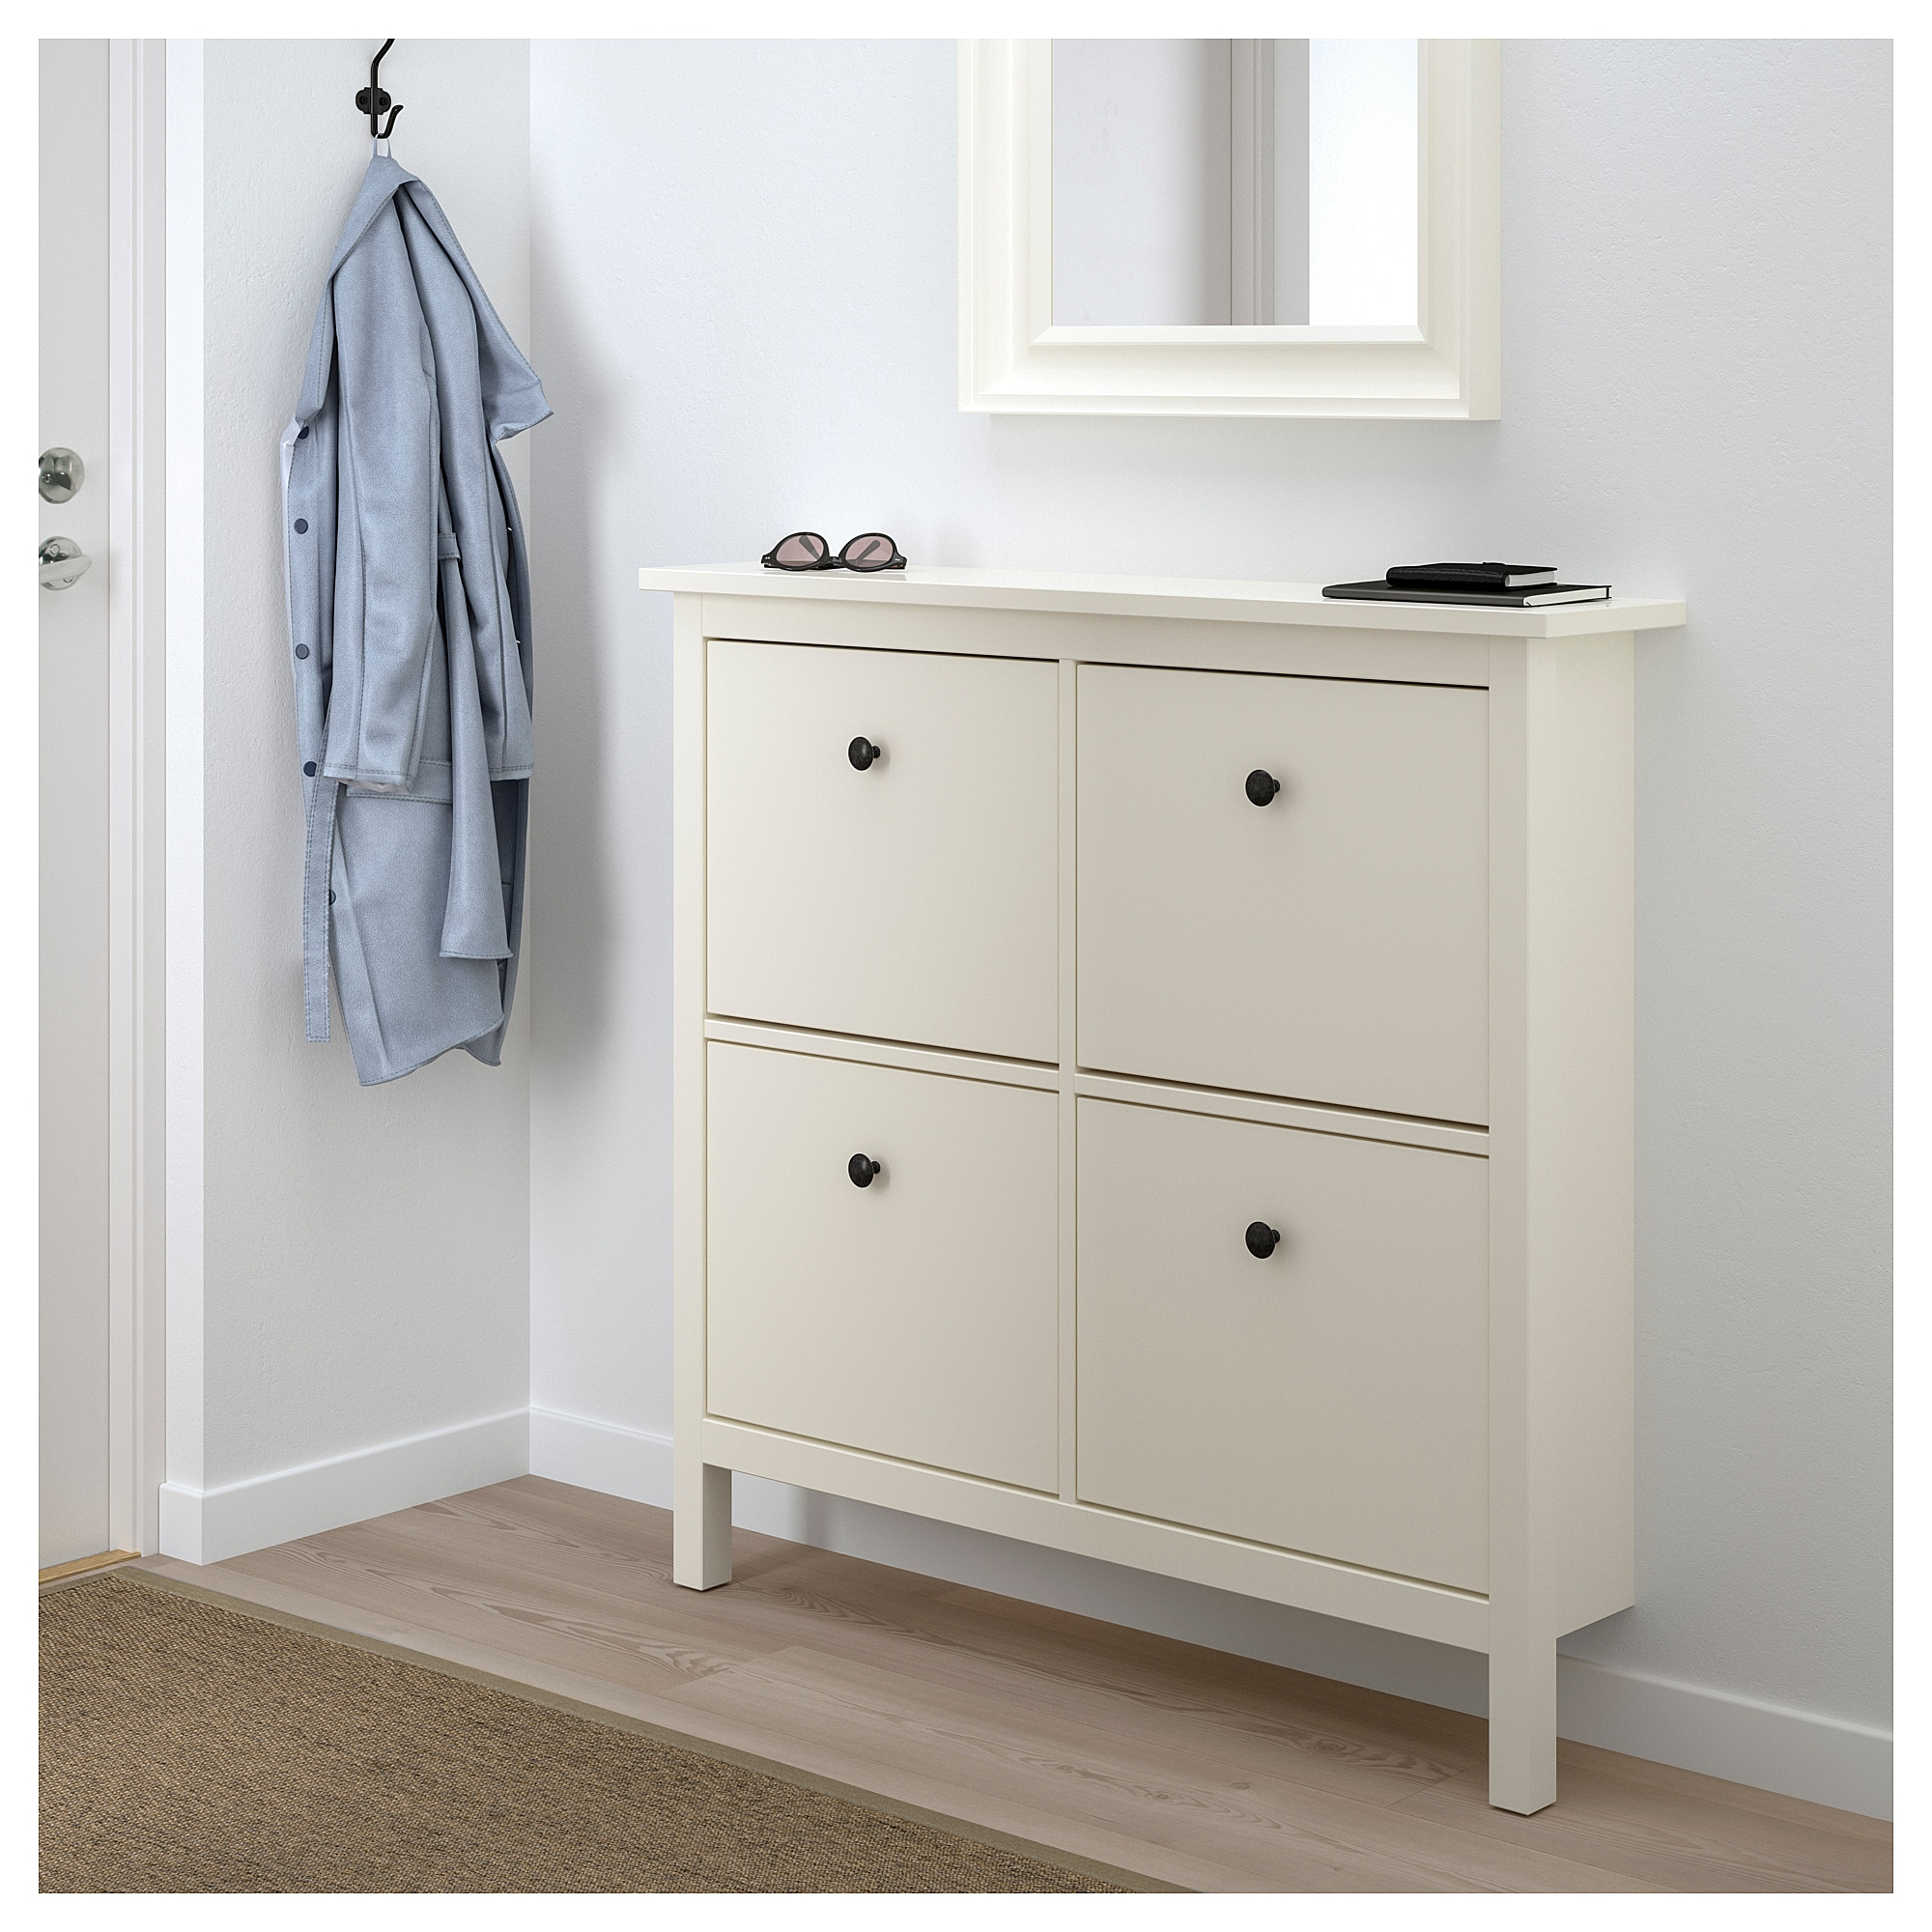 Ikea Shoe Drawers Hemnes Shoe Cabinet With 4 Compartments White Ikea